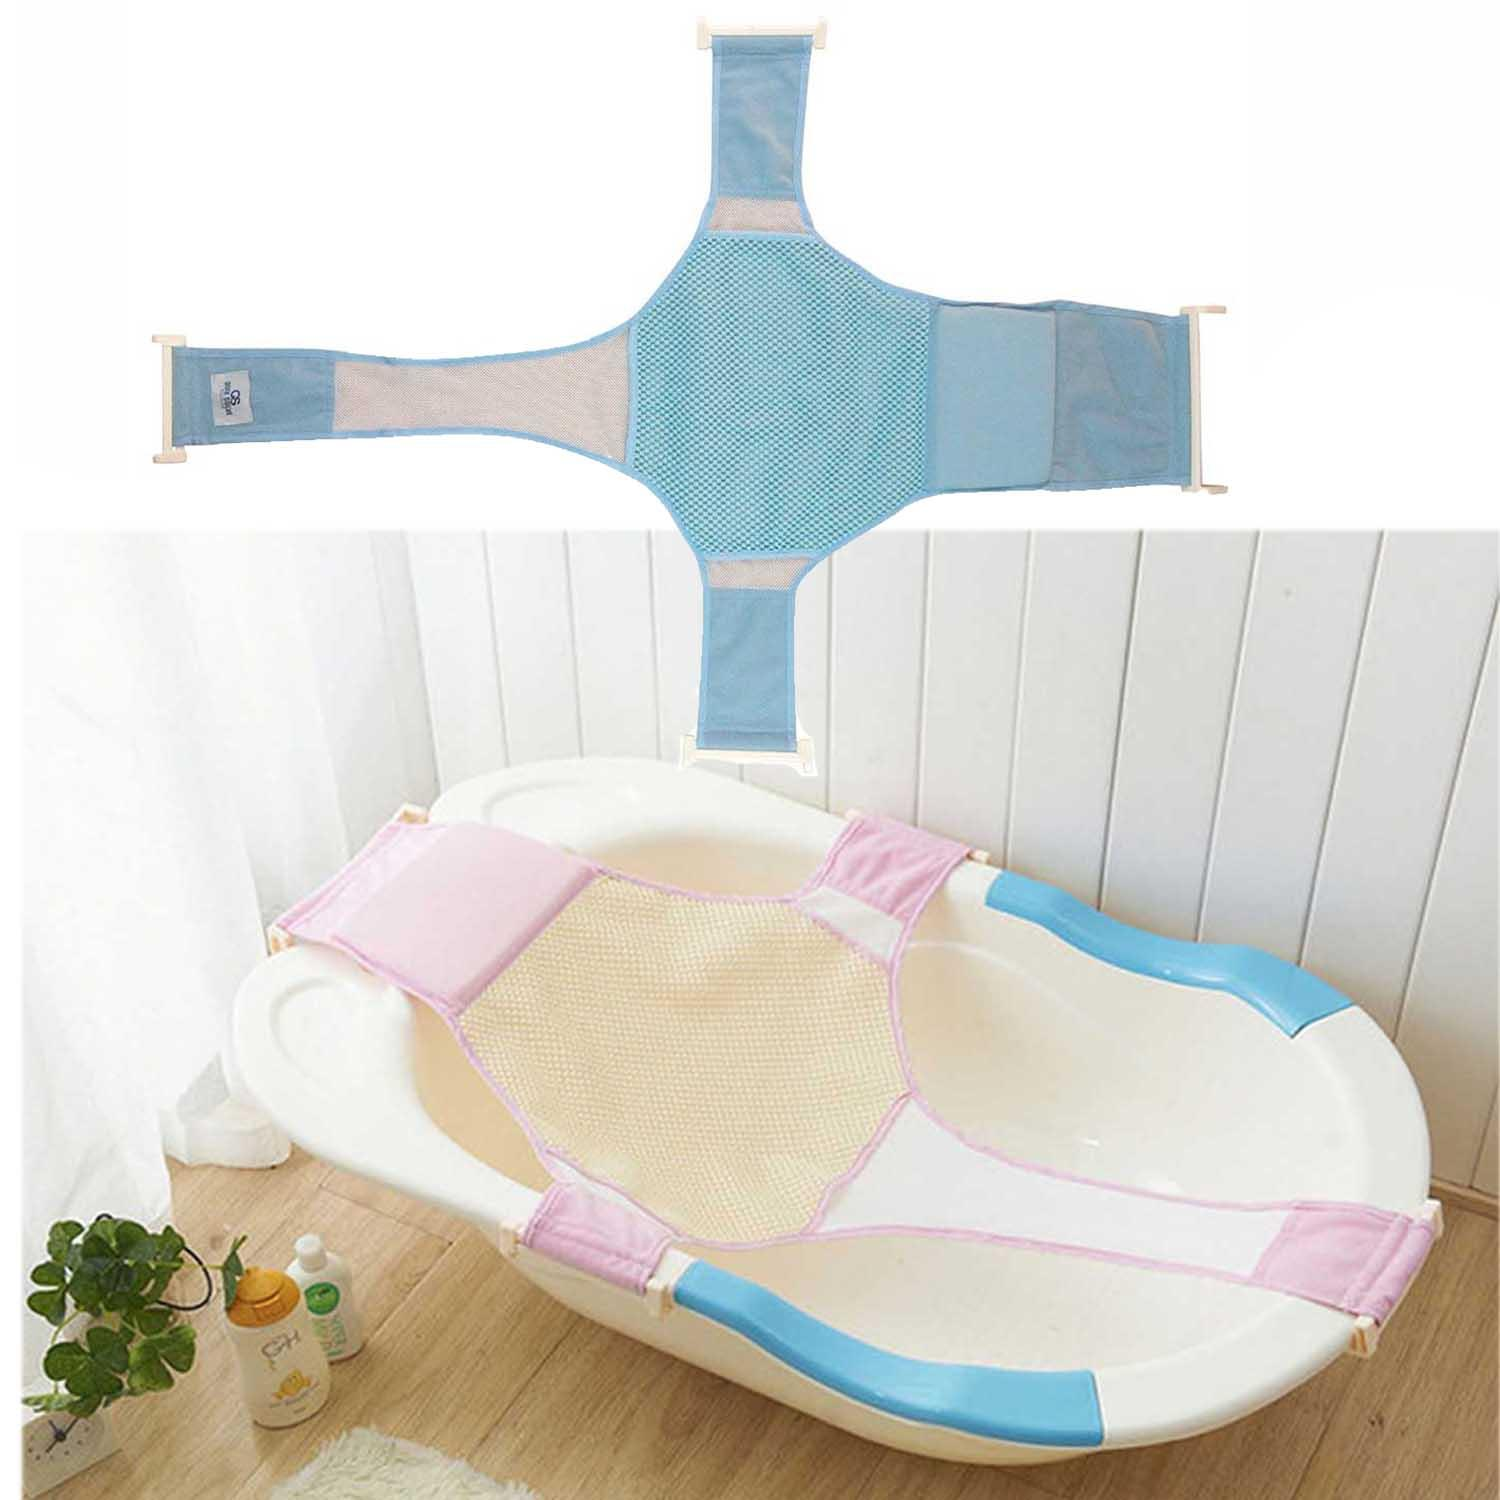 2018 Nc Adjustable Newborn Baby Bathtub Seat Support Shower Sling ...